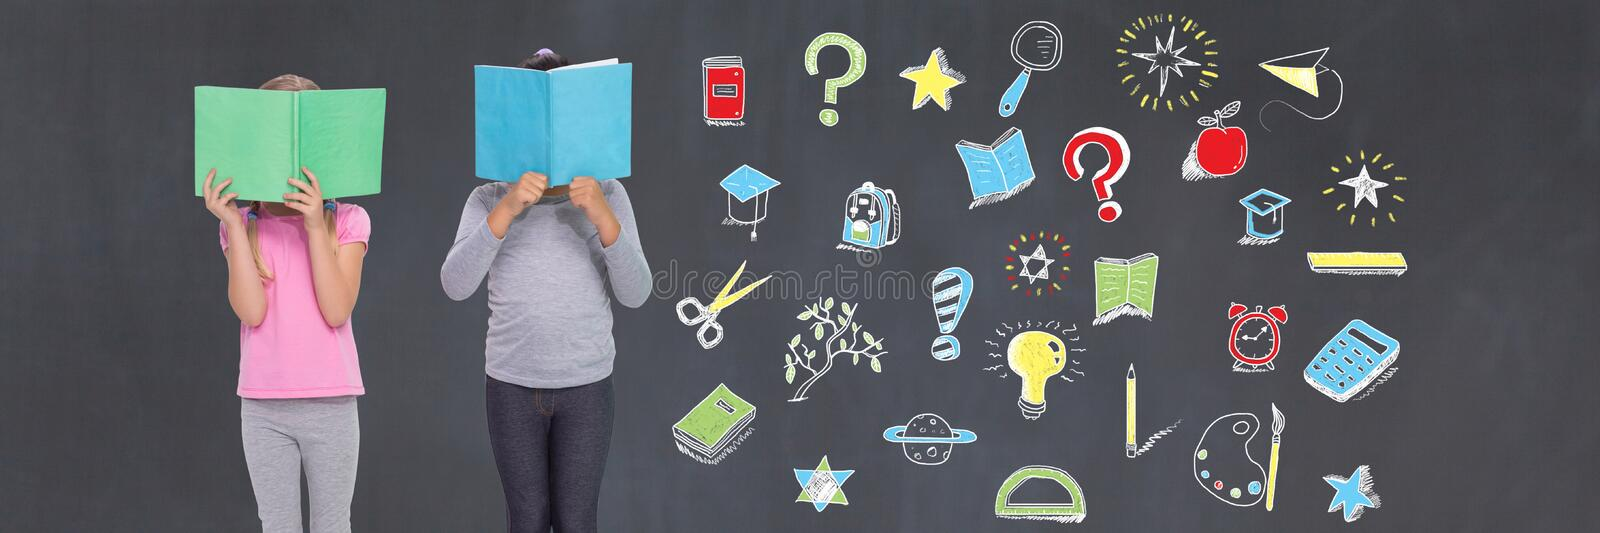 School kids reading and Education drawing on blackboard stock photography